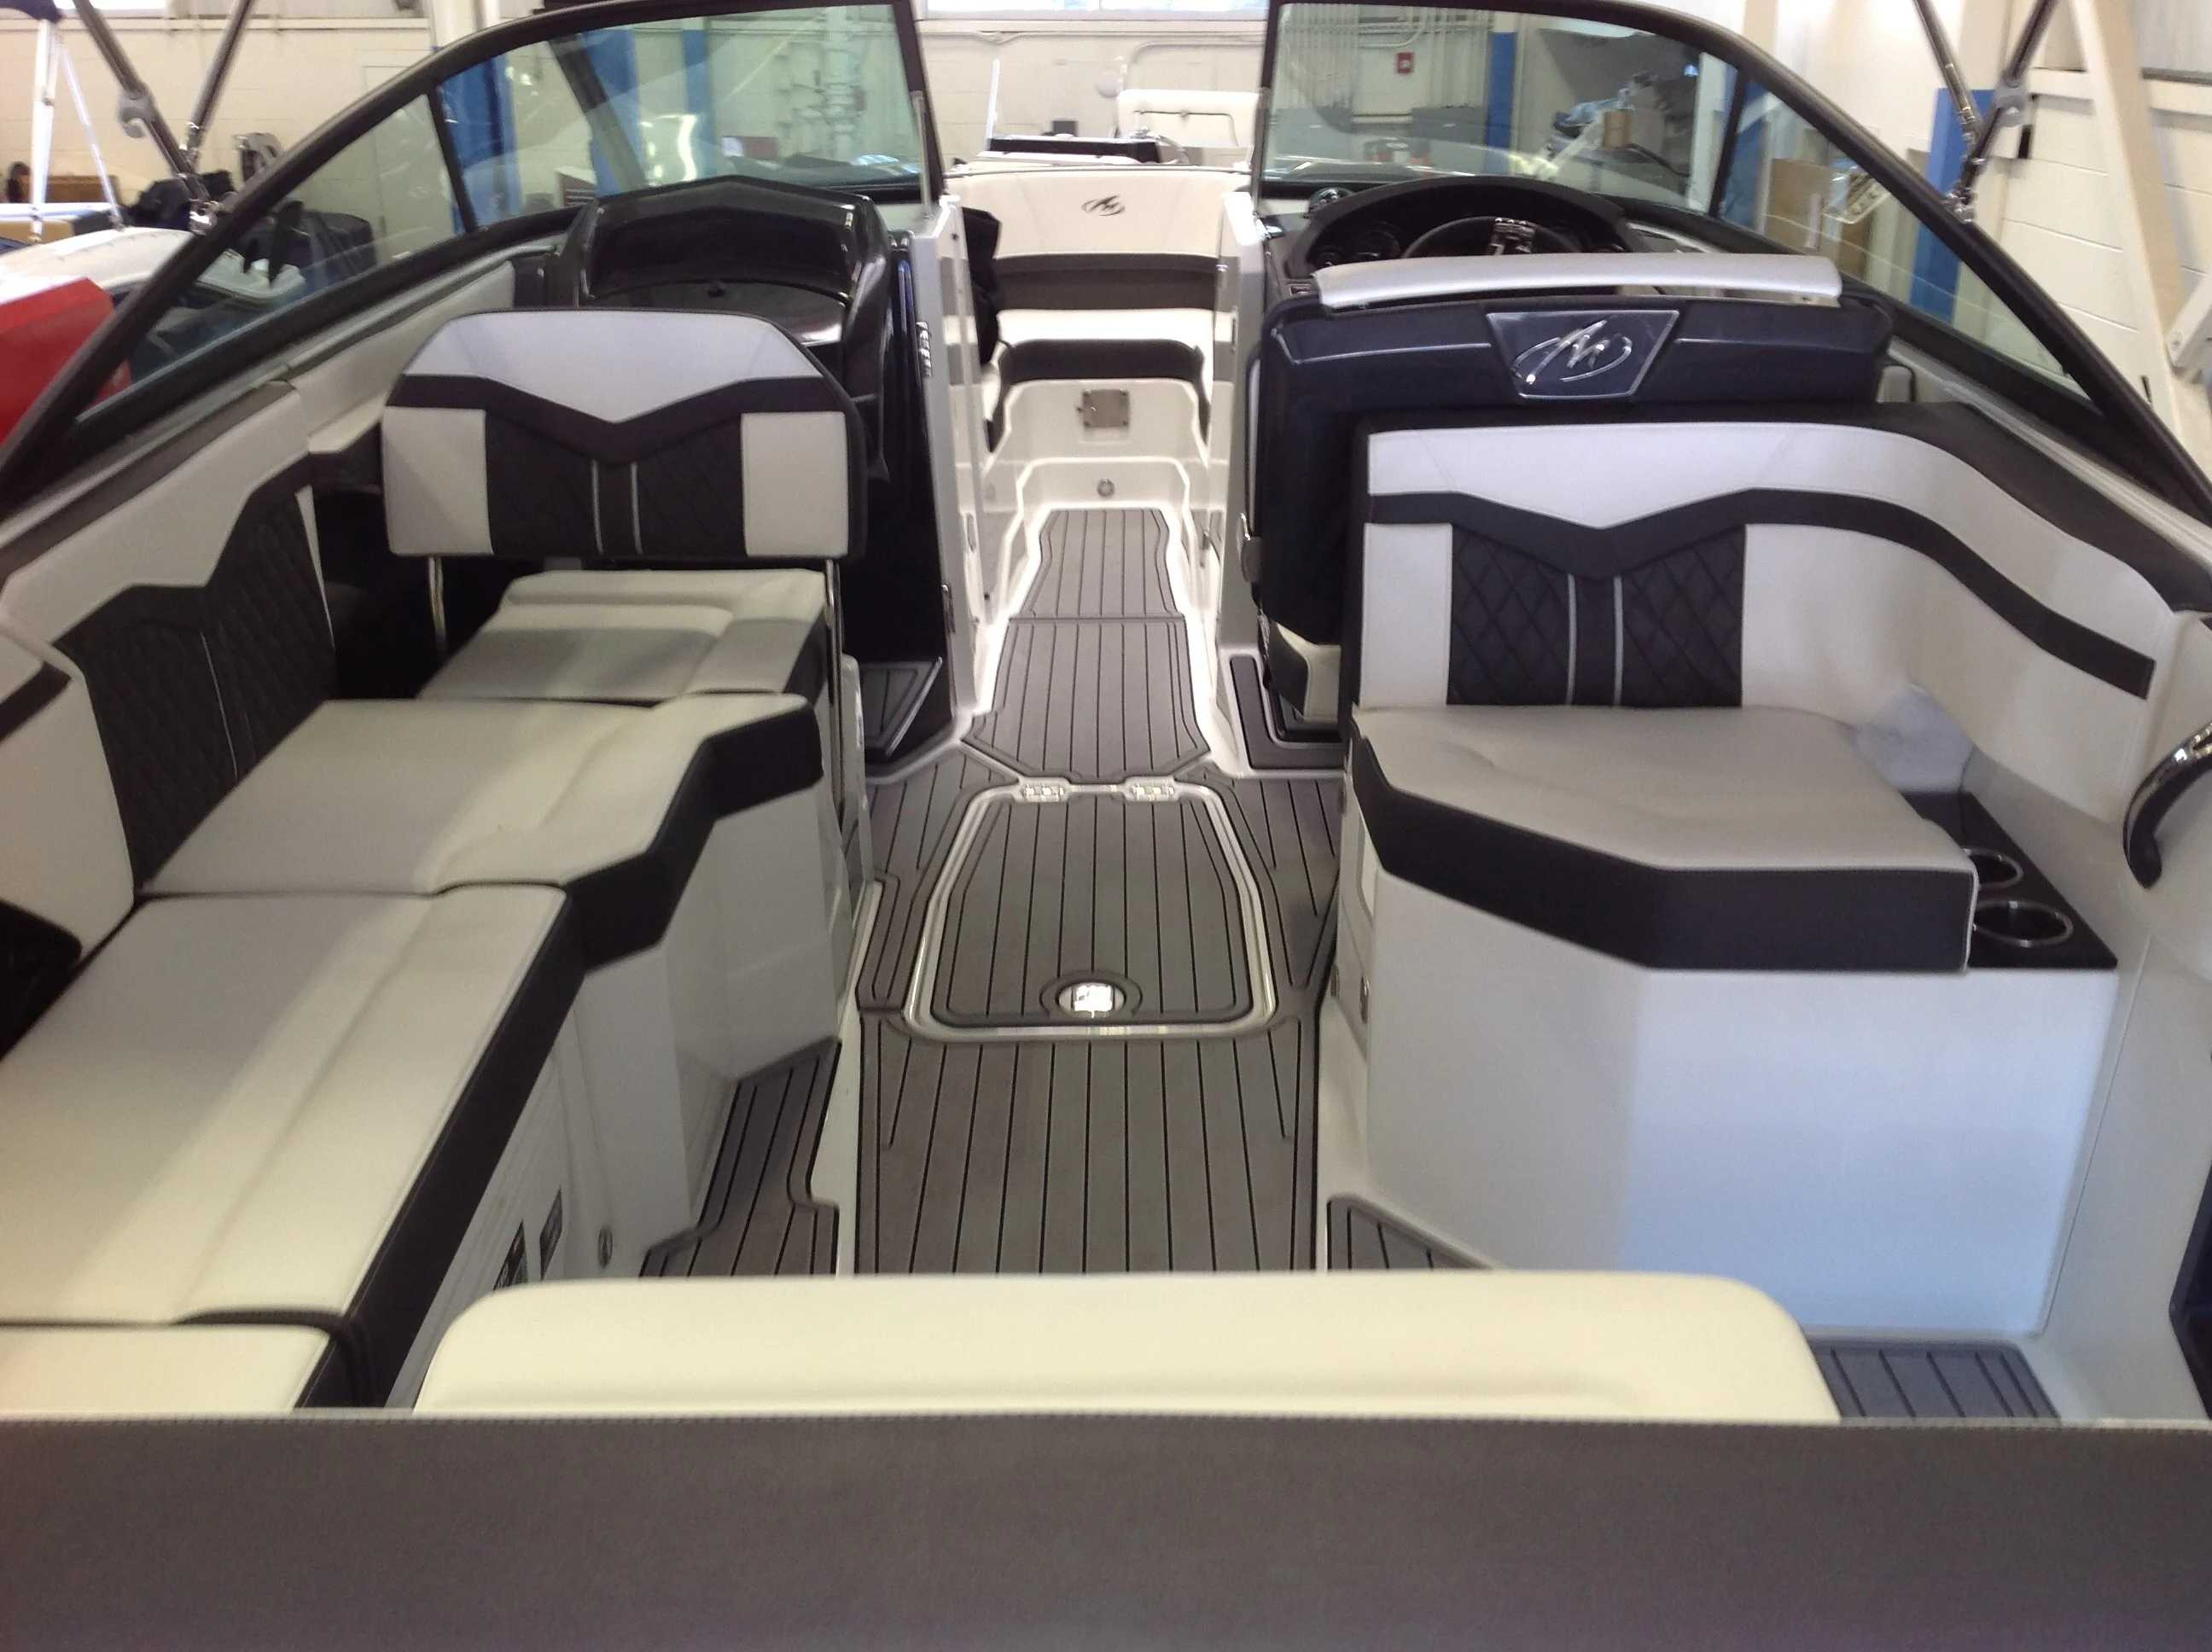 2022 Monterey boat for sale, model of the boat is 258SS & Image # 15 of 18